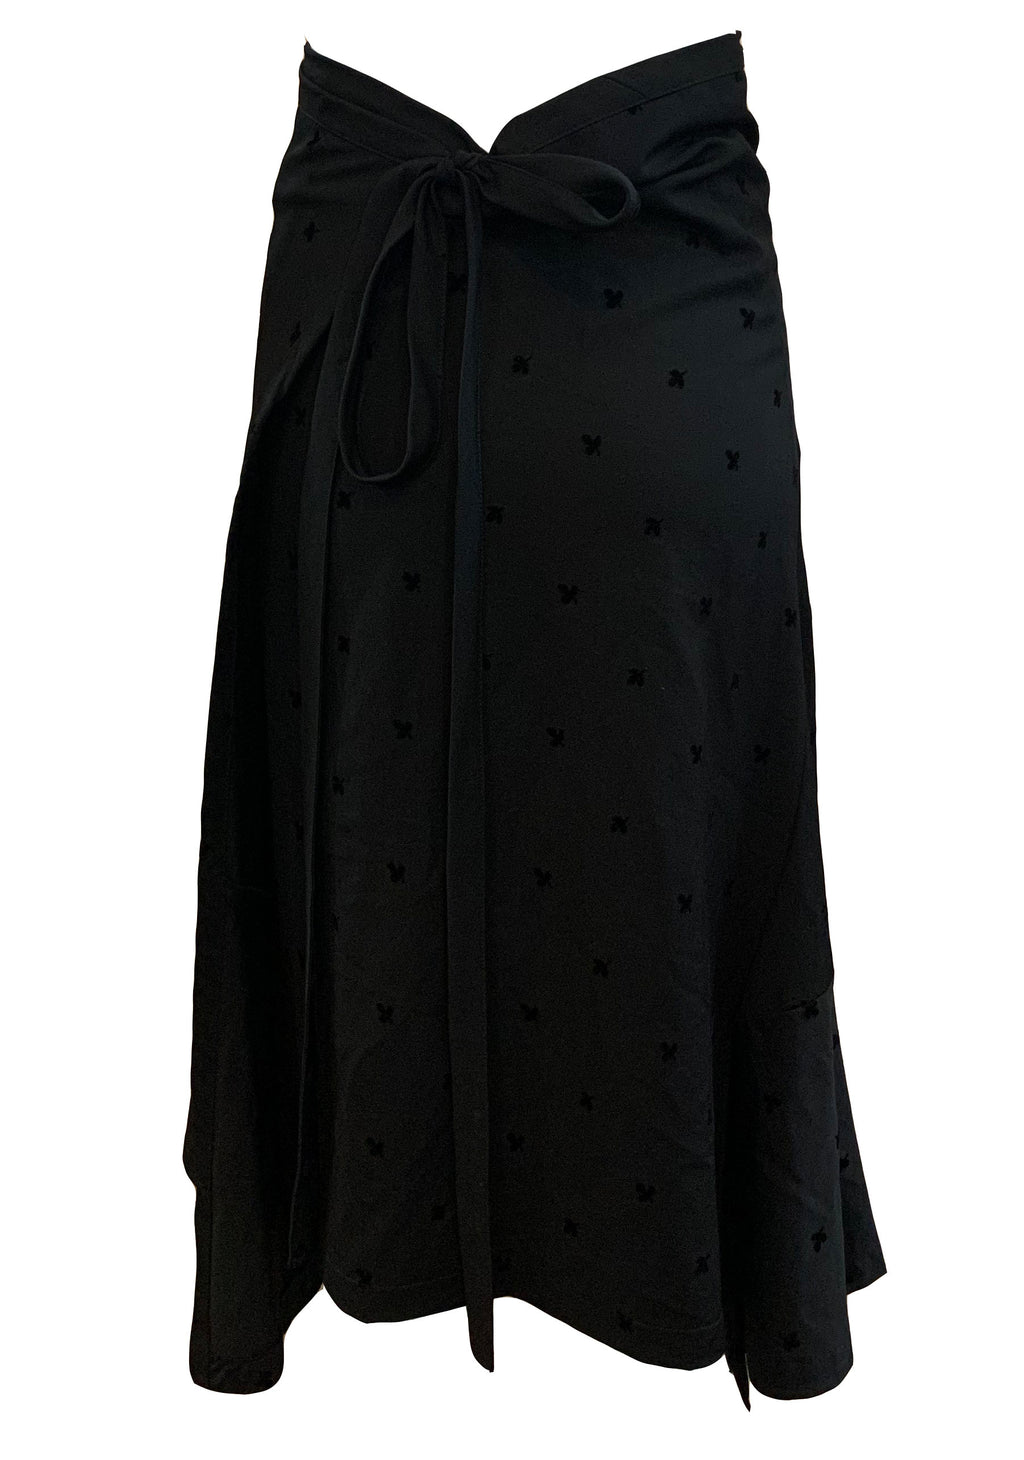 Comme des Garcons Early 2000s Black Wrap Asymmetrical Skirt FRONT 1 of 5